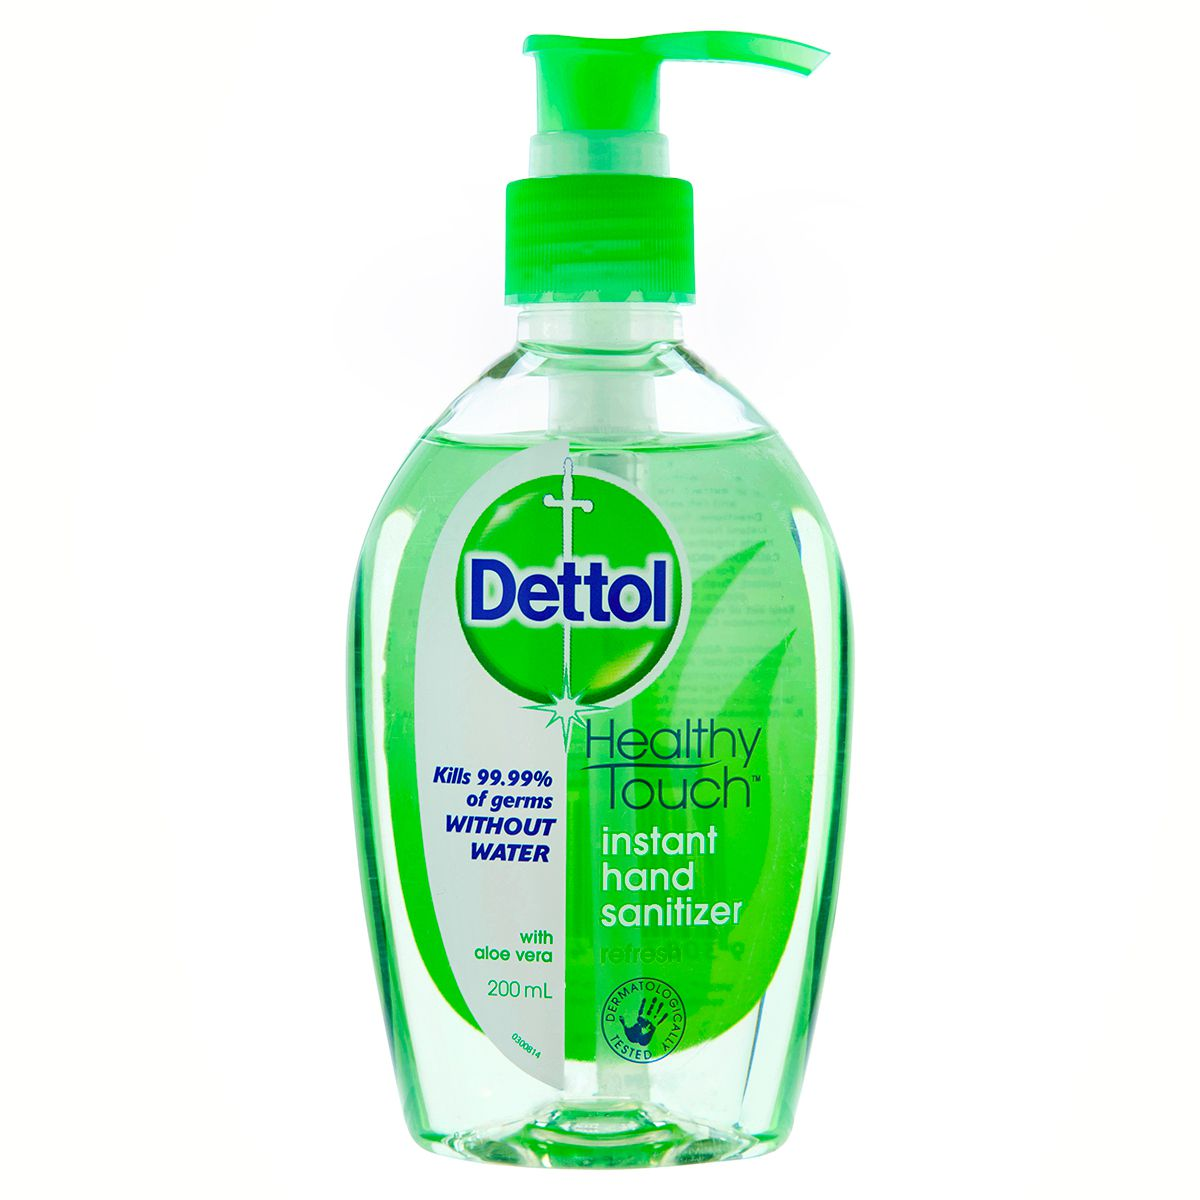 Dettol Instant Hand Sanitizer Refresh 200ml